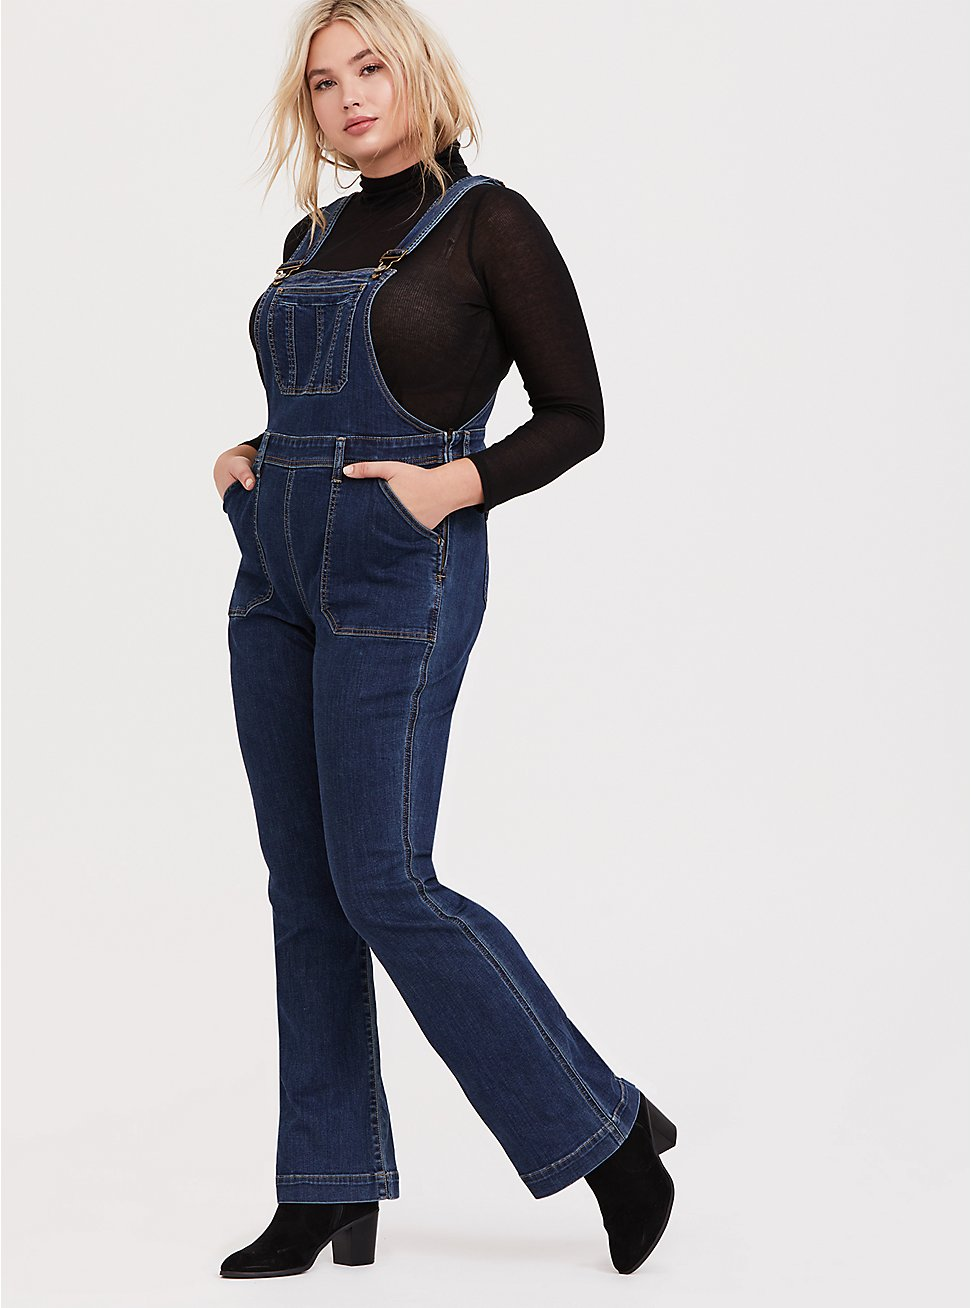 Flared Overall - Vintage Stretch Dark Wash, MEDIUM WASH, hi-res